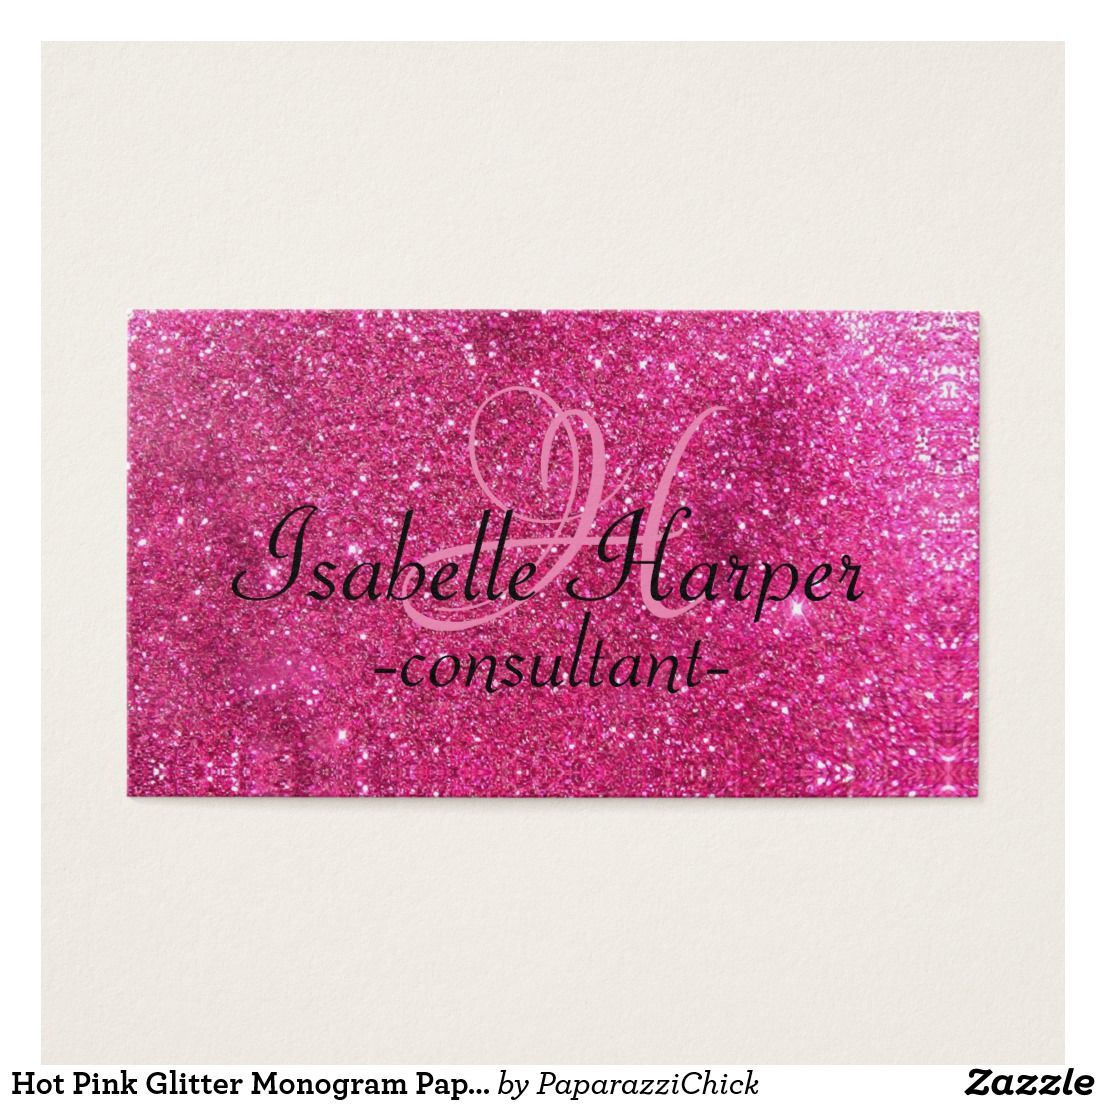 Hot pink glitter monogram paparazzi jewelry and accessories hot pink glitter monogram paparazzi jewelry and accessories consultant business cards to give to customers sparkly bling glittery cards made to be eye colourmoves